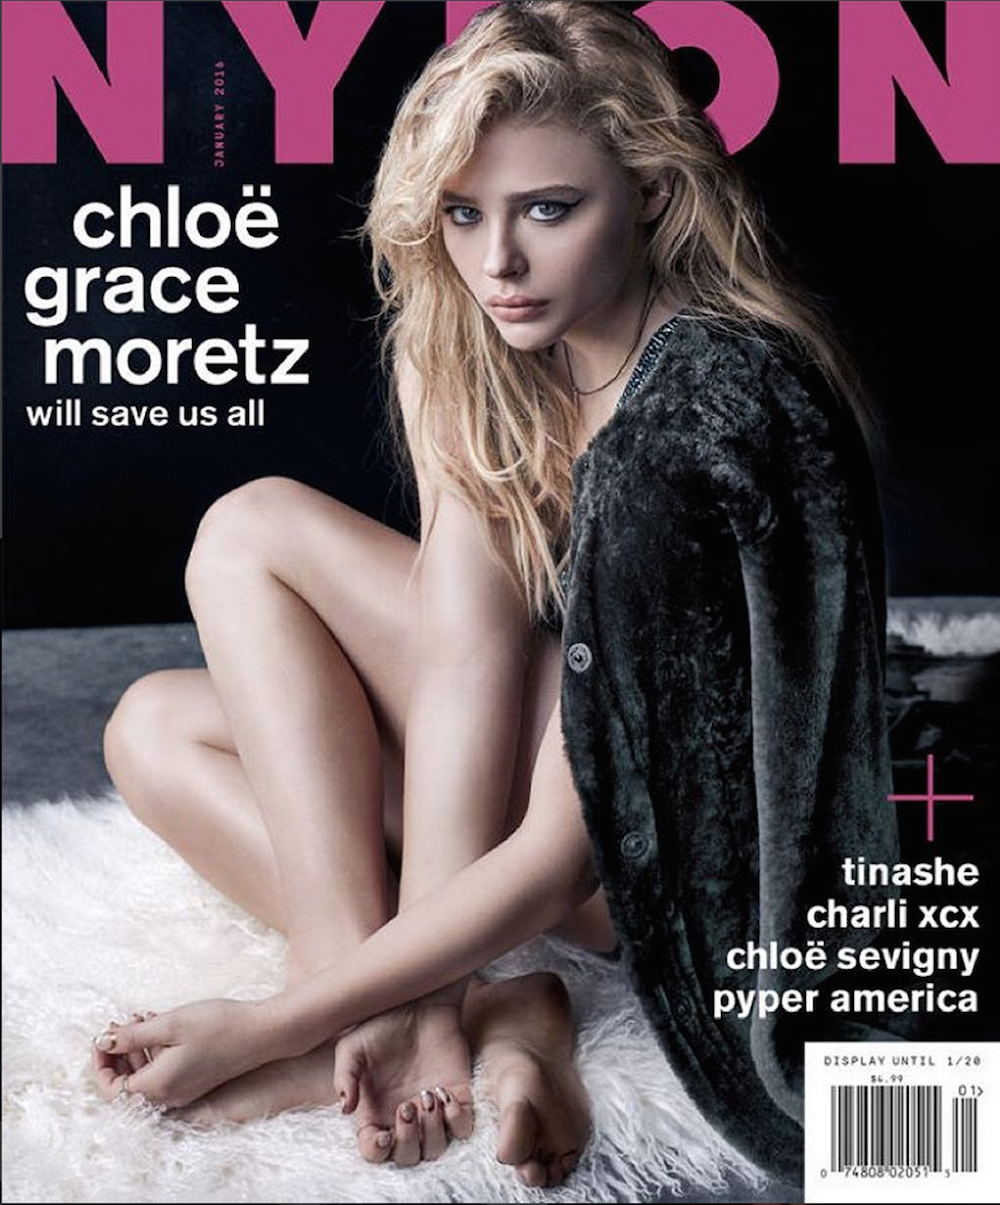 chlo grace moretz no one should care what your sexual orientation